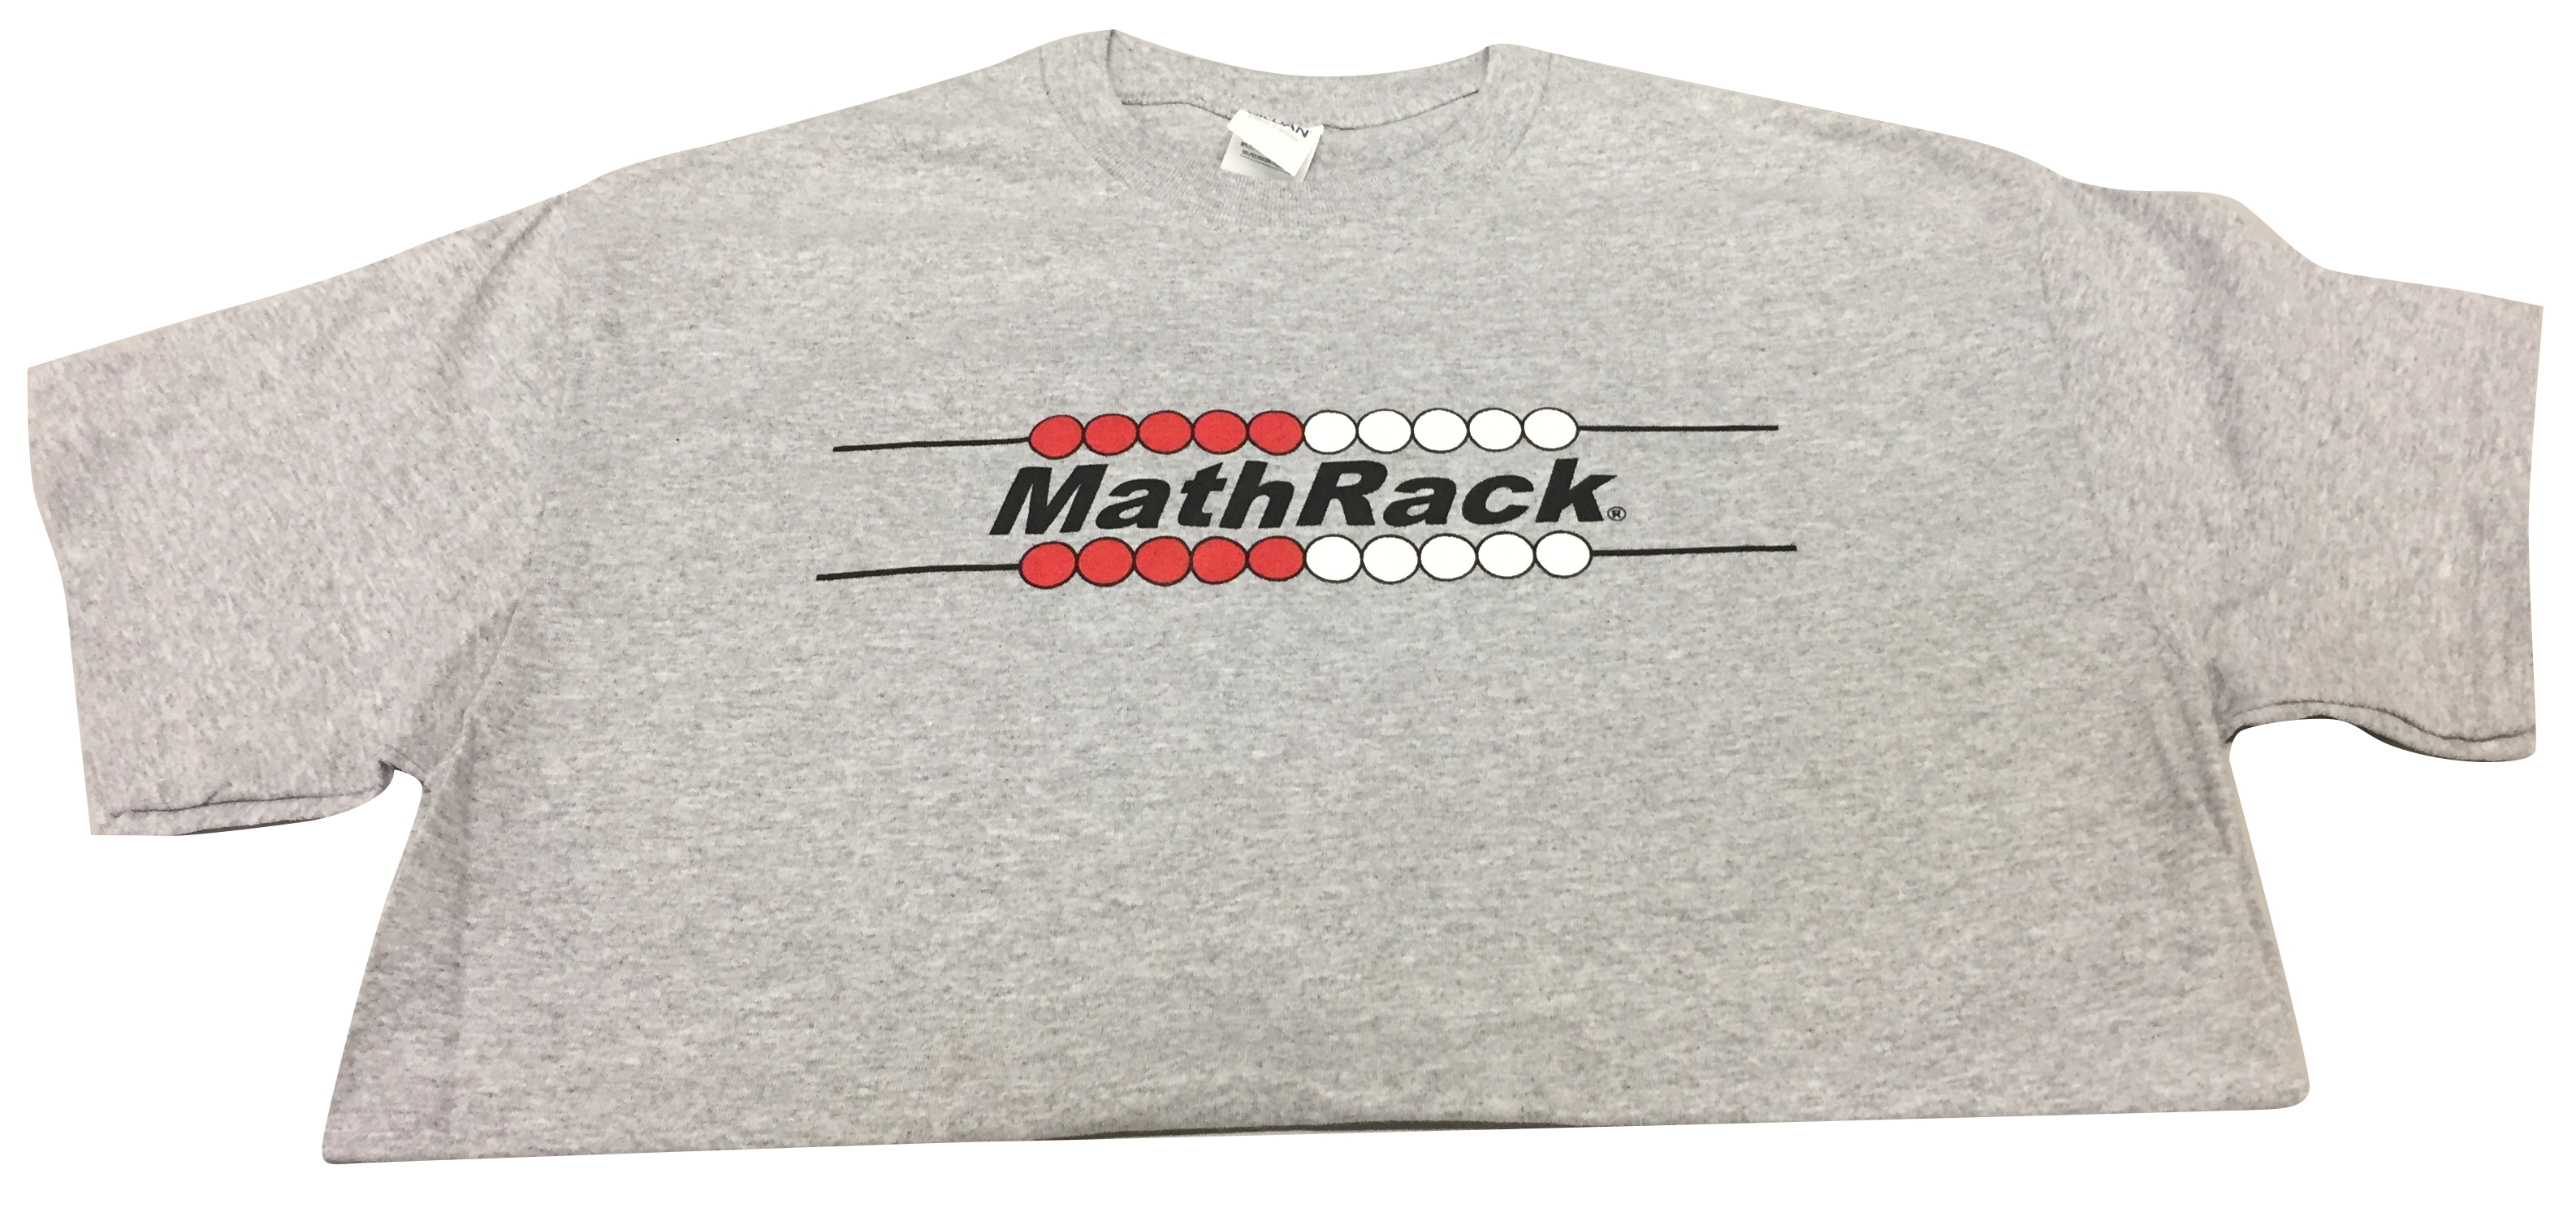 MathRack T-Shirt (Short Sleeve)